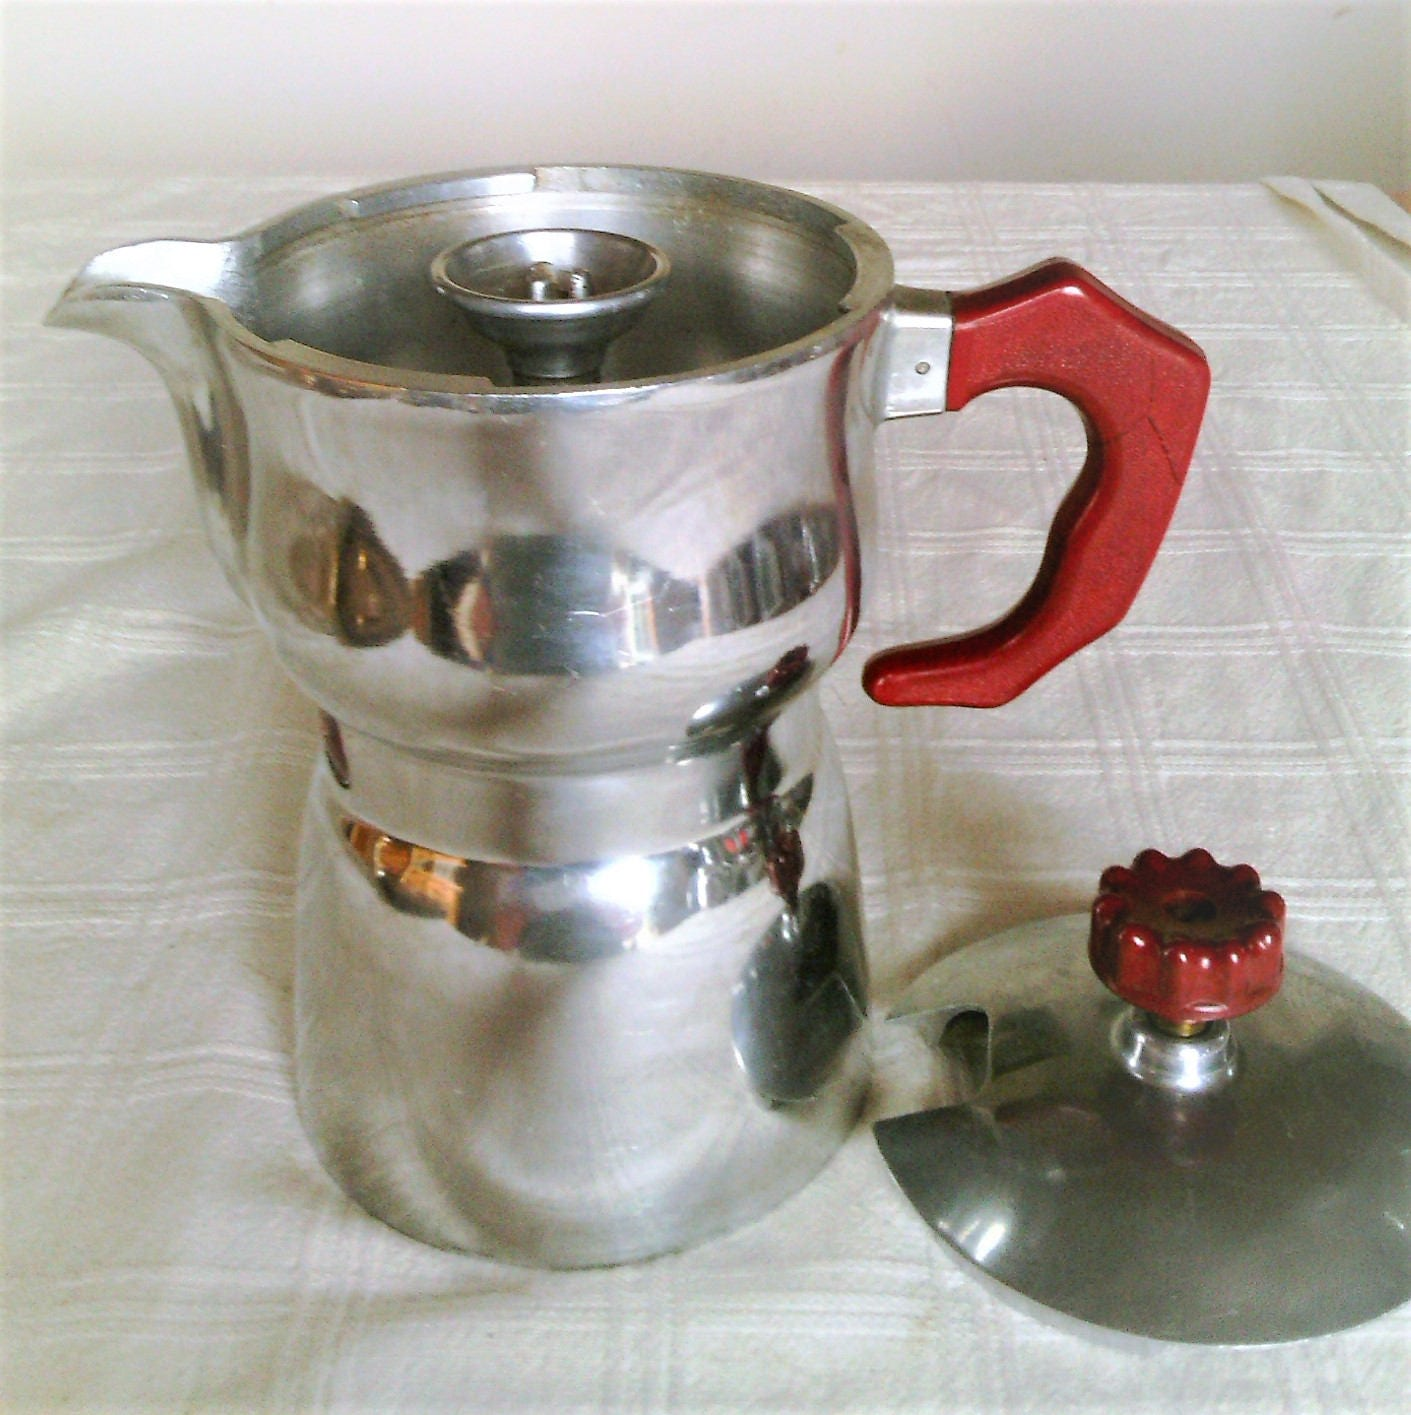 Old Drip Coffee Maker : Caffexpress Vintage Italian Drip Coffee Maker or Coffee Pot